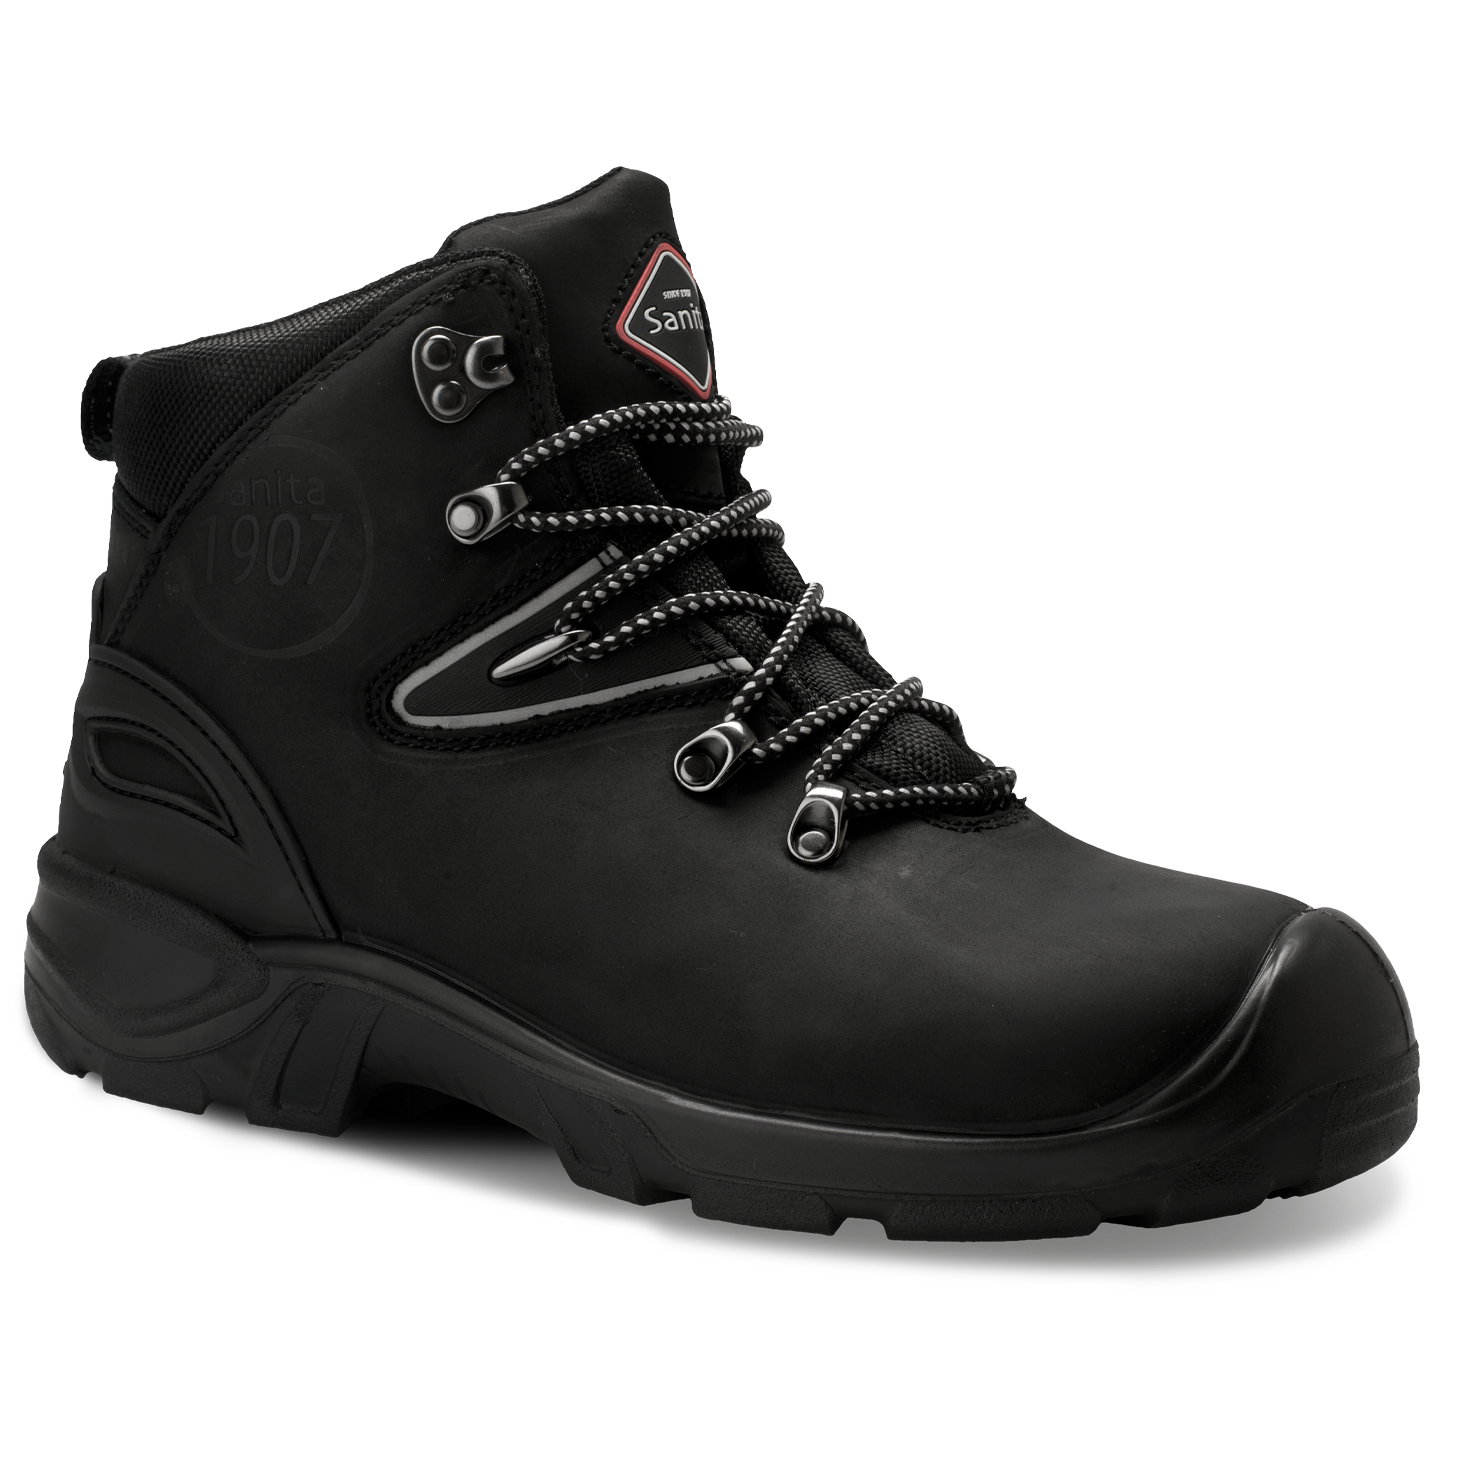 Sanita Colorado Unisex in Black Safety Boot